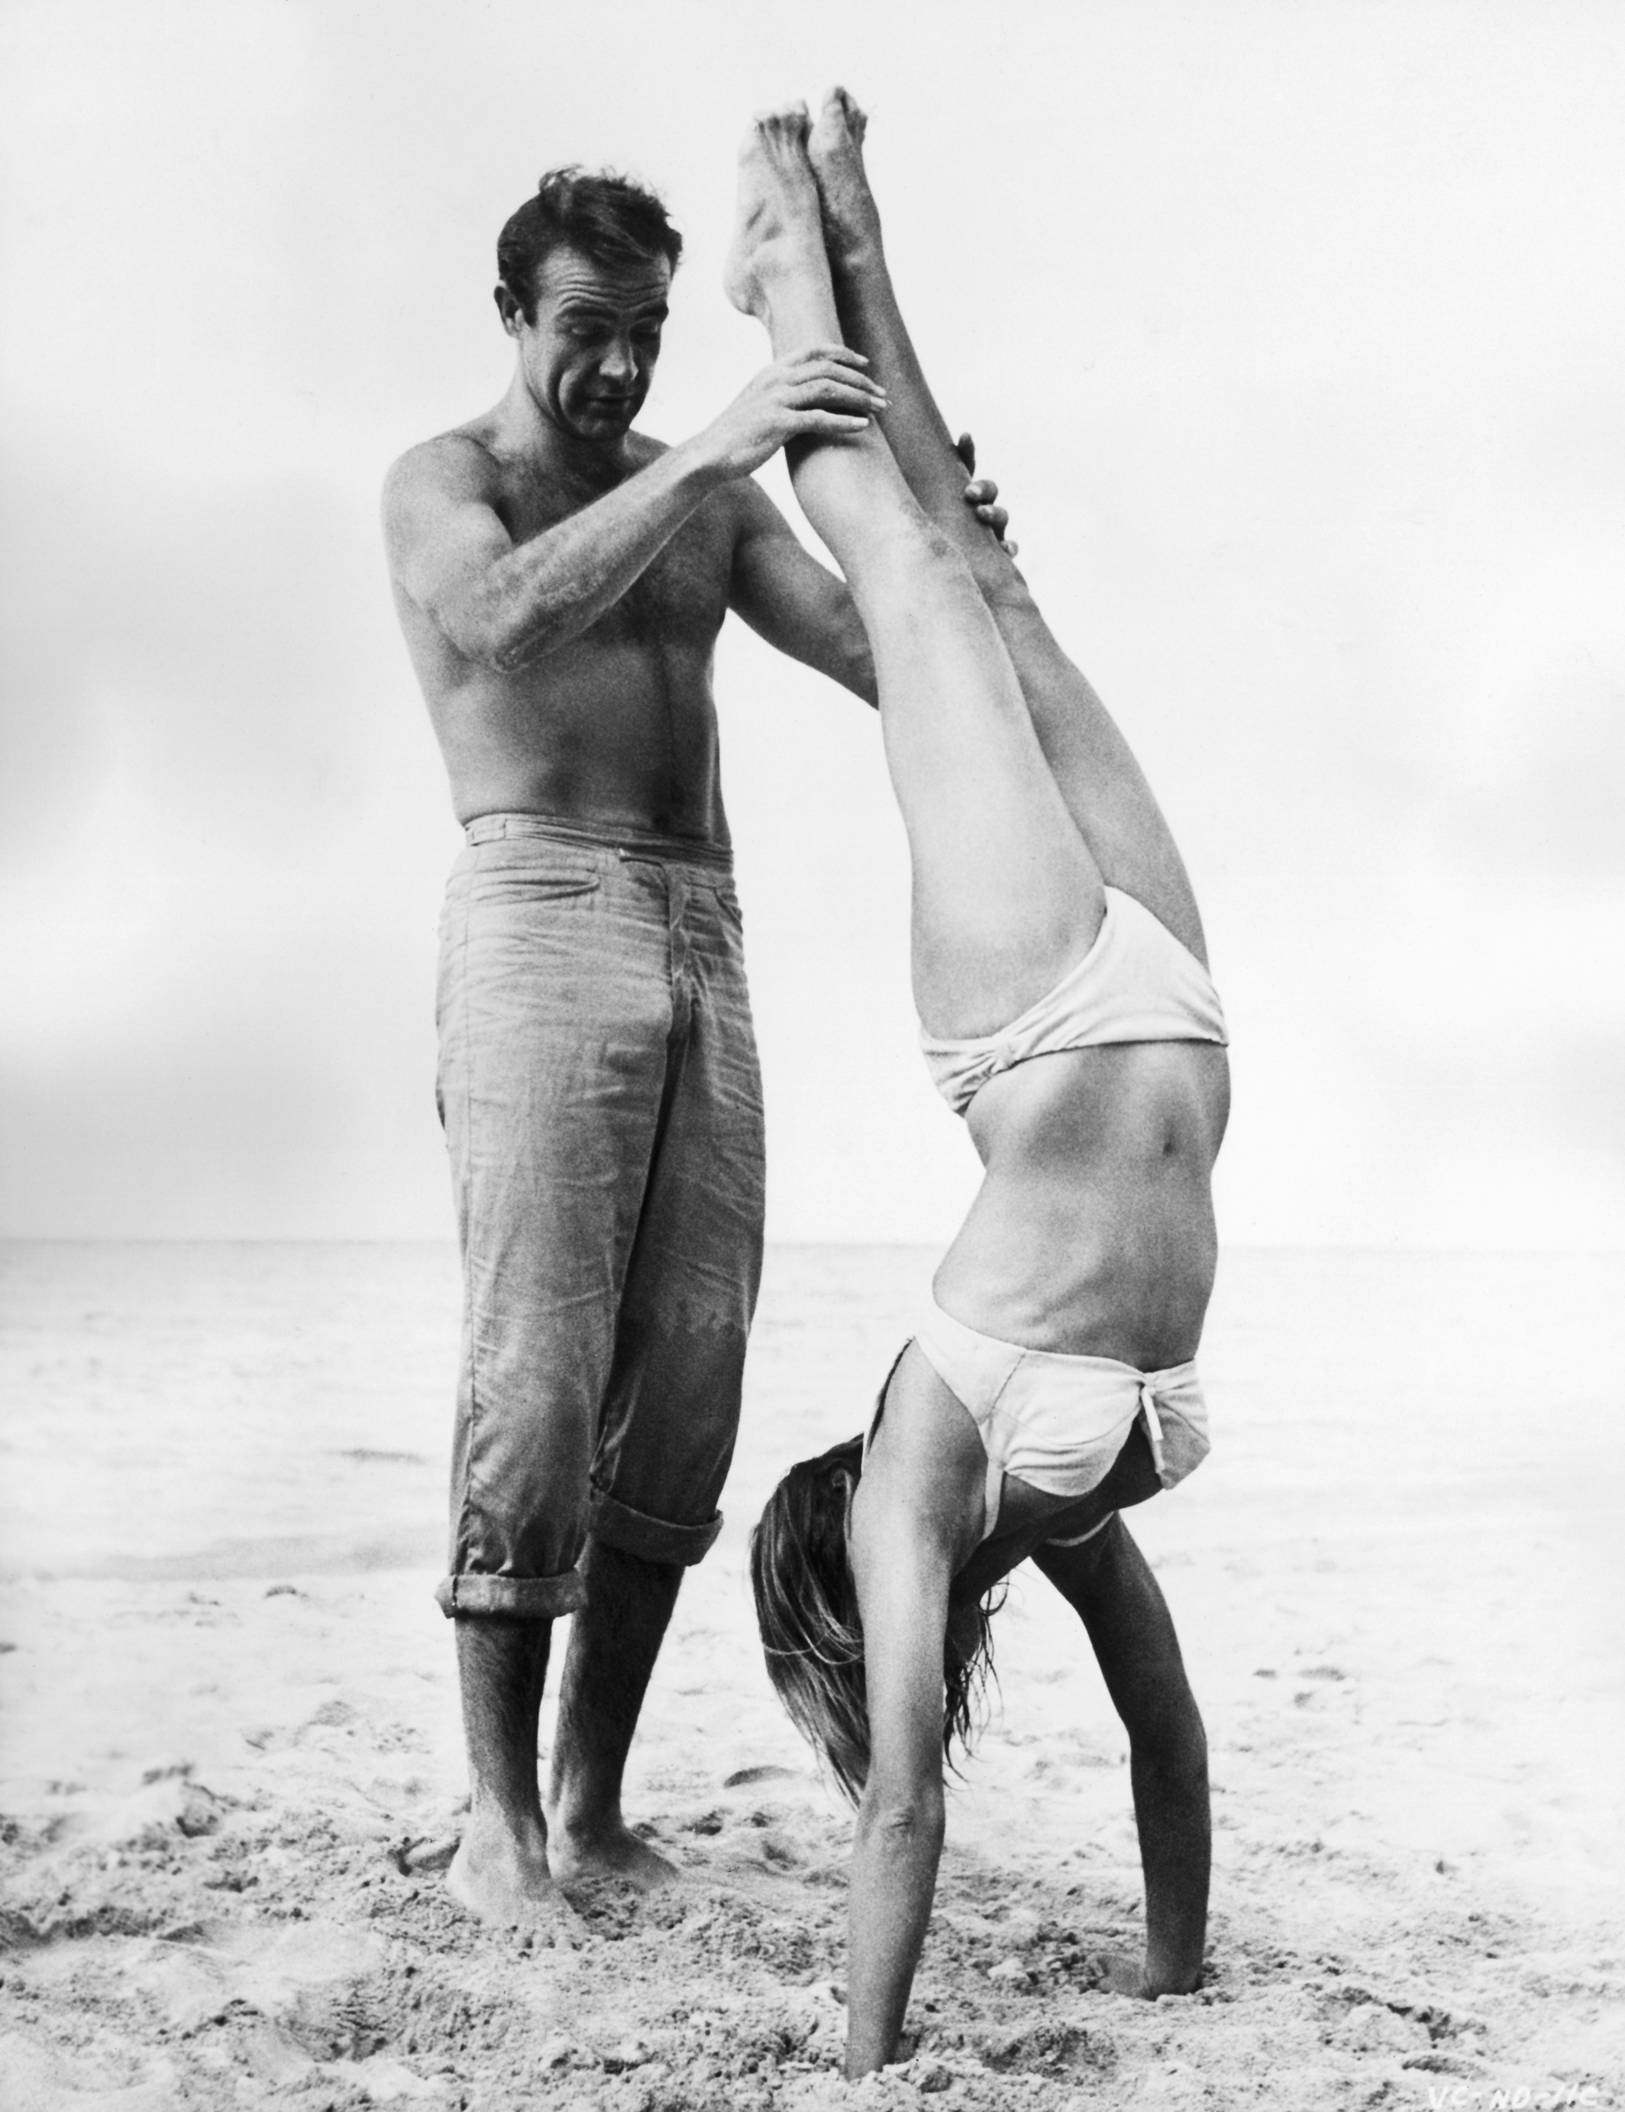 Ursula Andress - Sean Connery